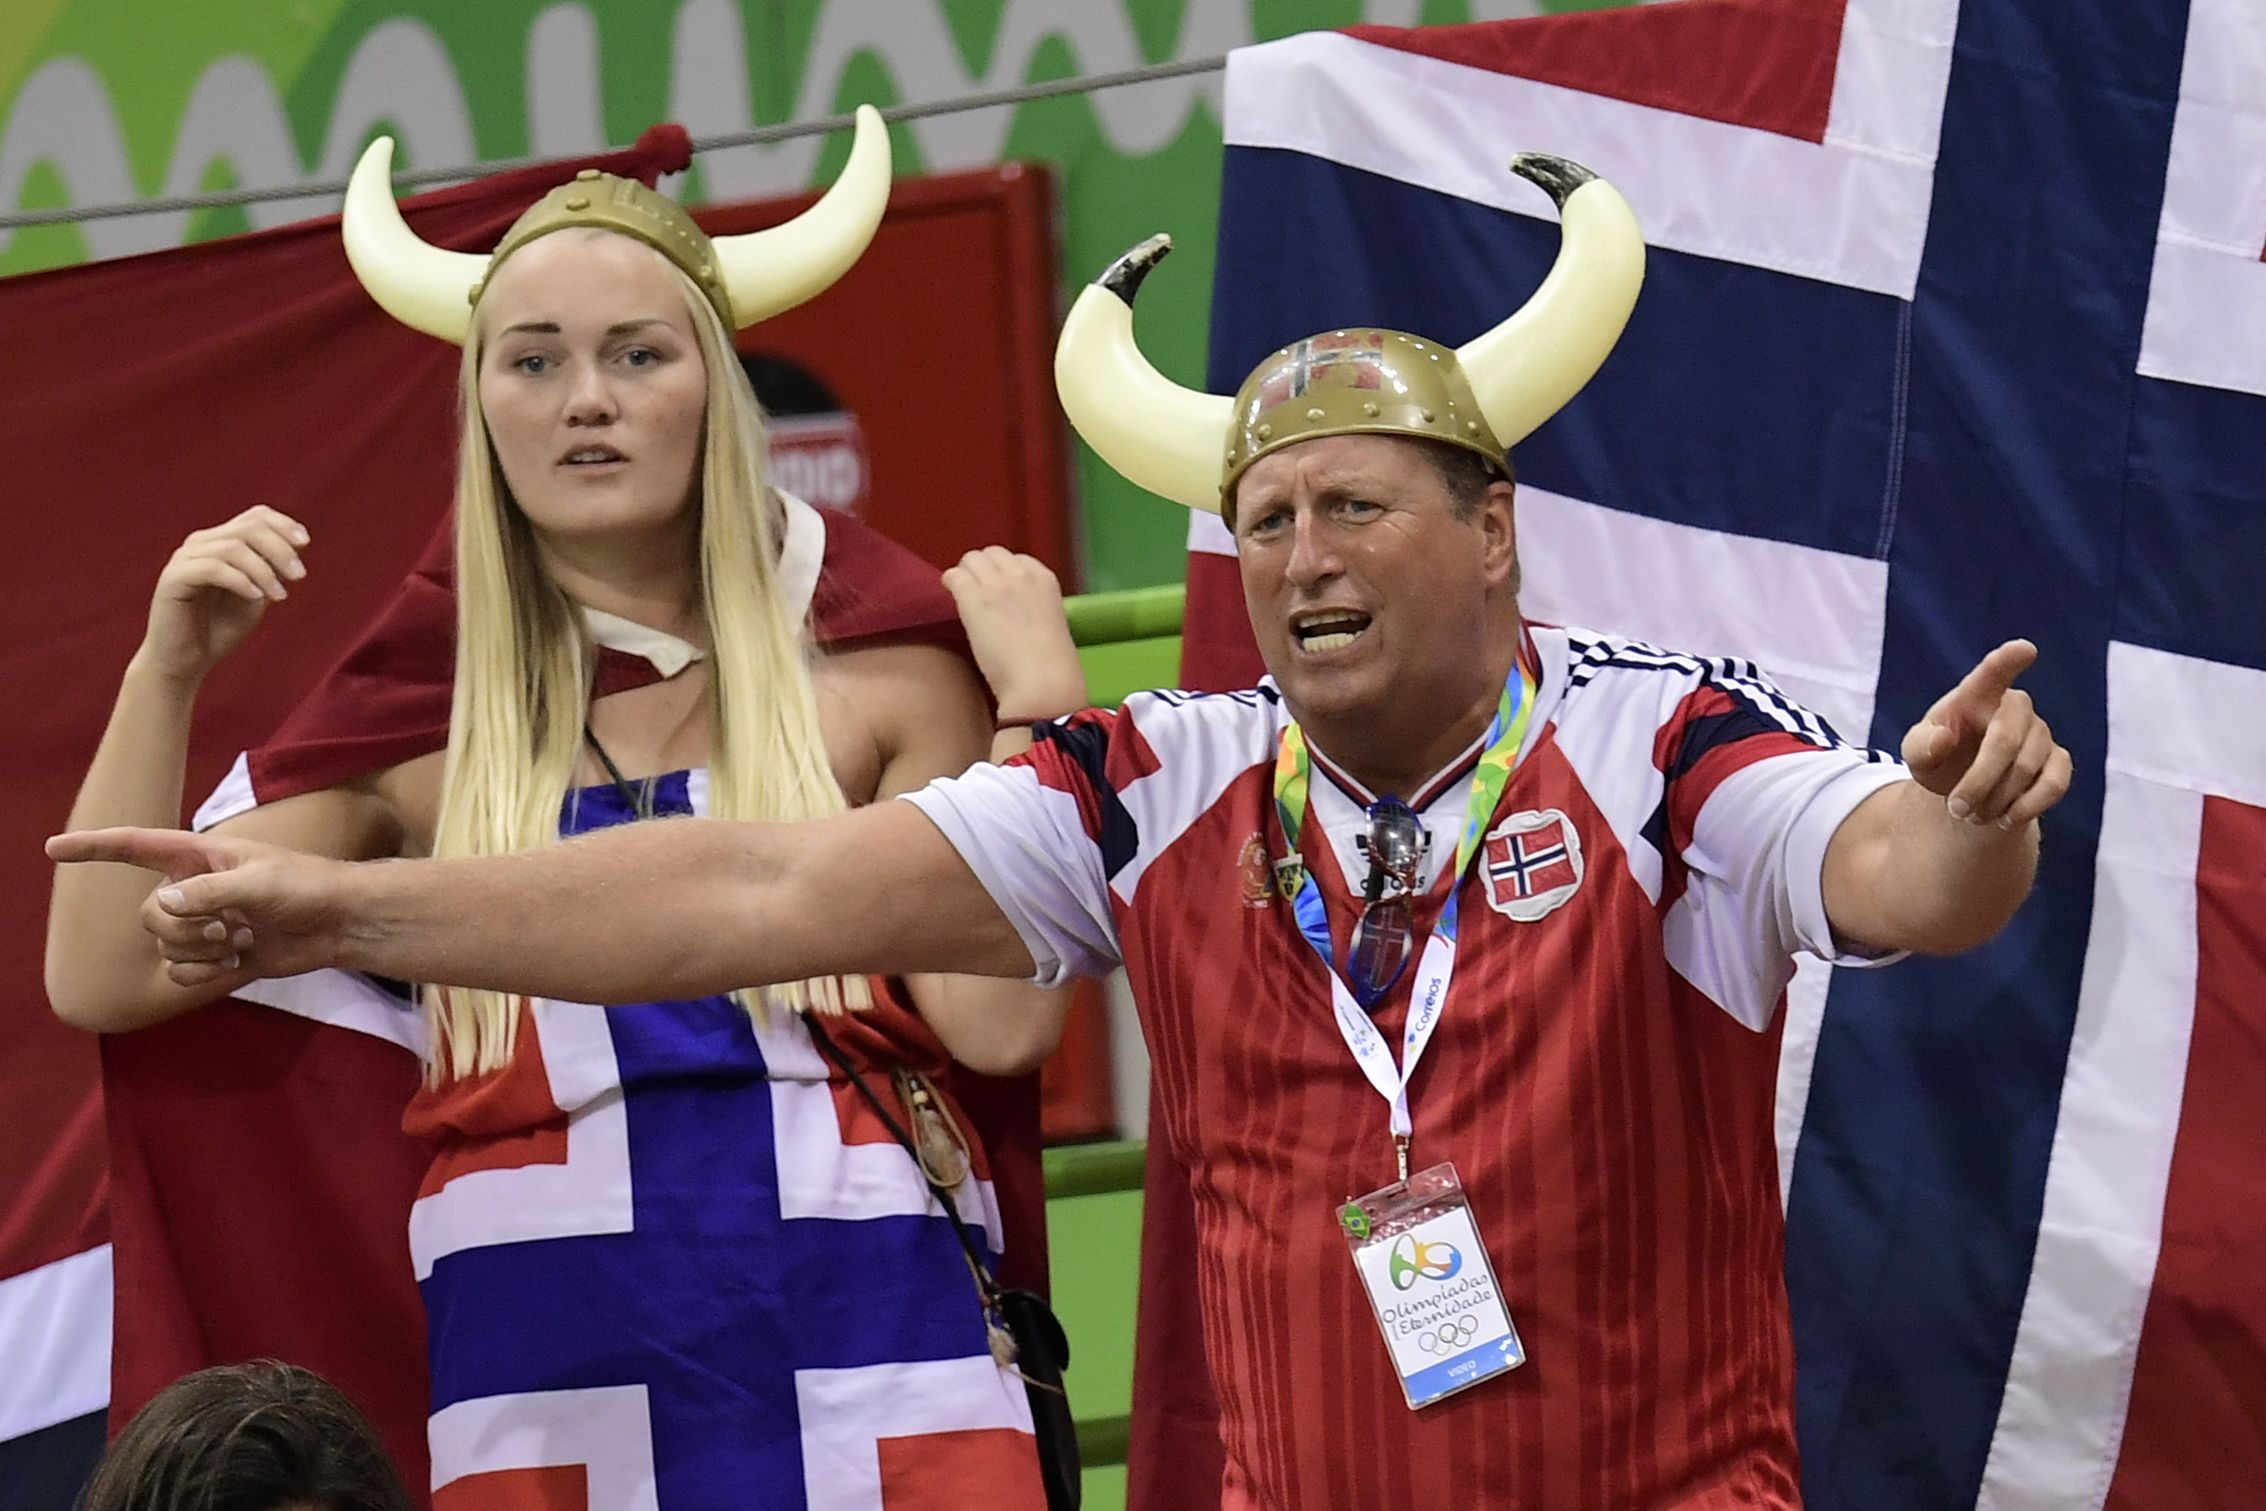 Norwegian fans sporting Viking helmets cheer on their team during the women's quarterfinal handball match against Sweden on Tuesday at the Rio de Janeiro 2016 Olympics Games. |   AFP-JIJI